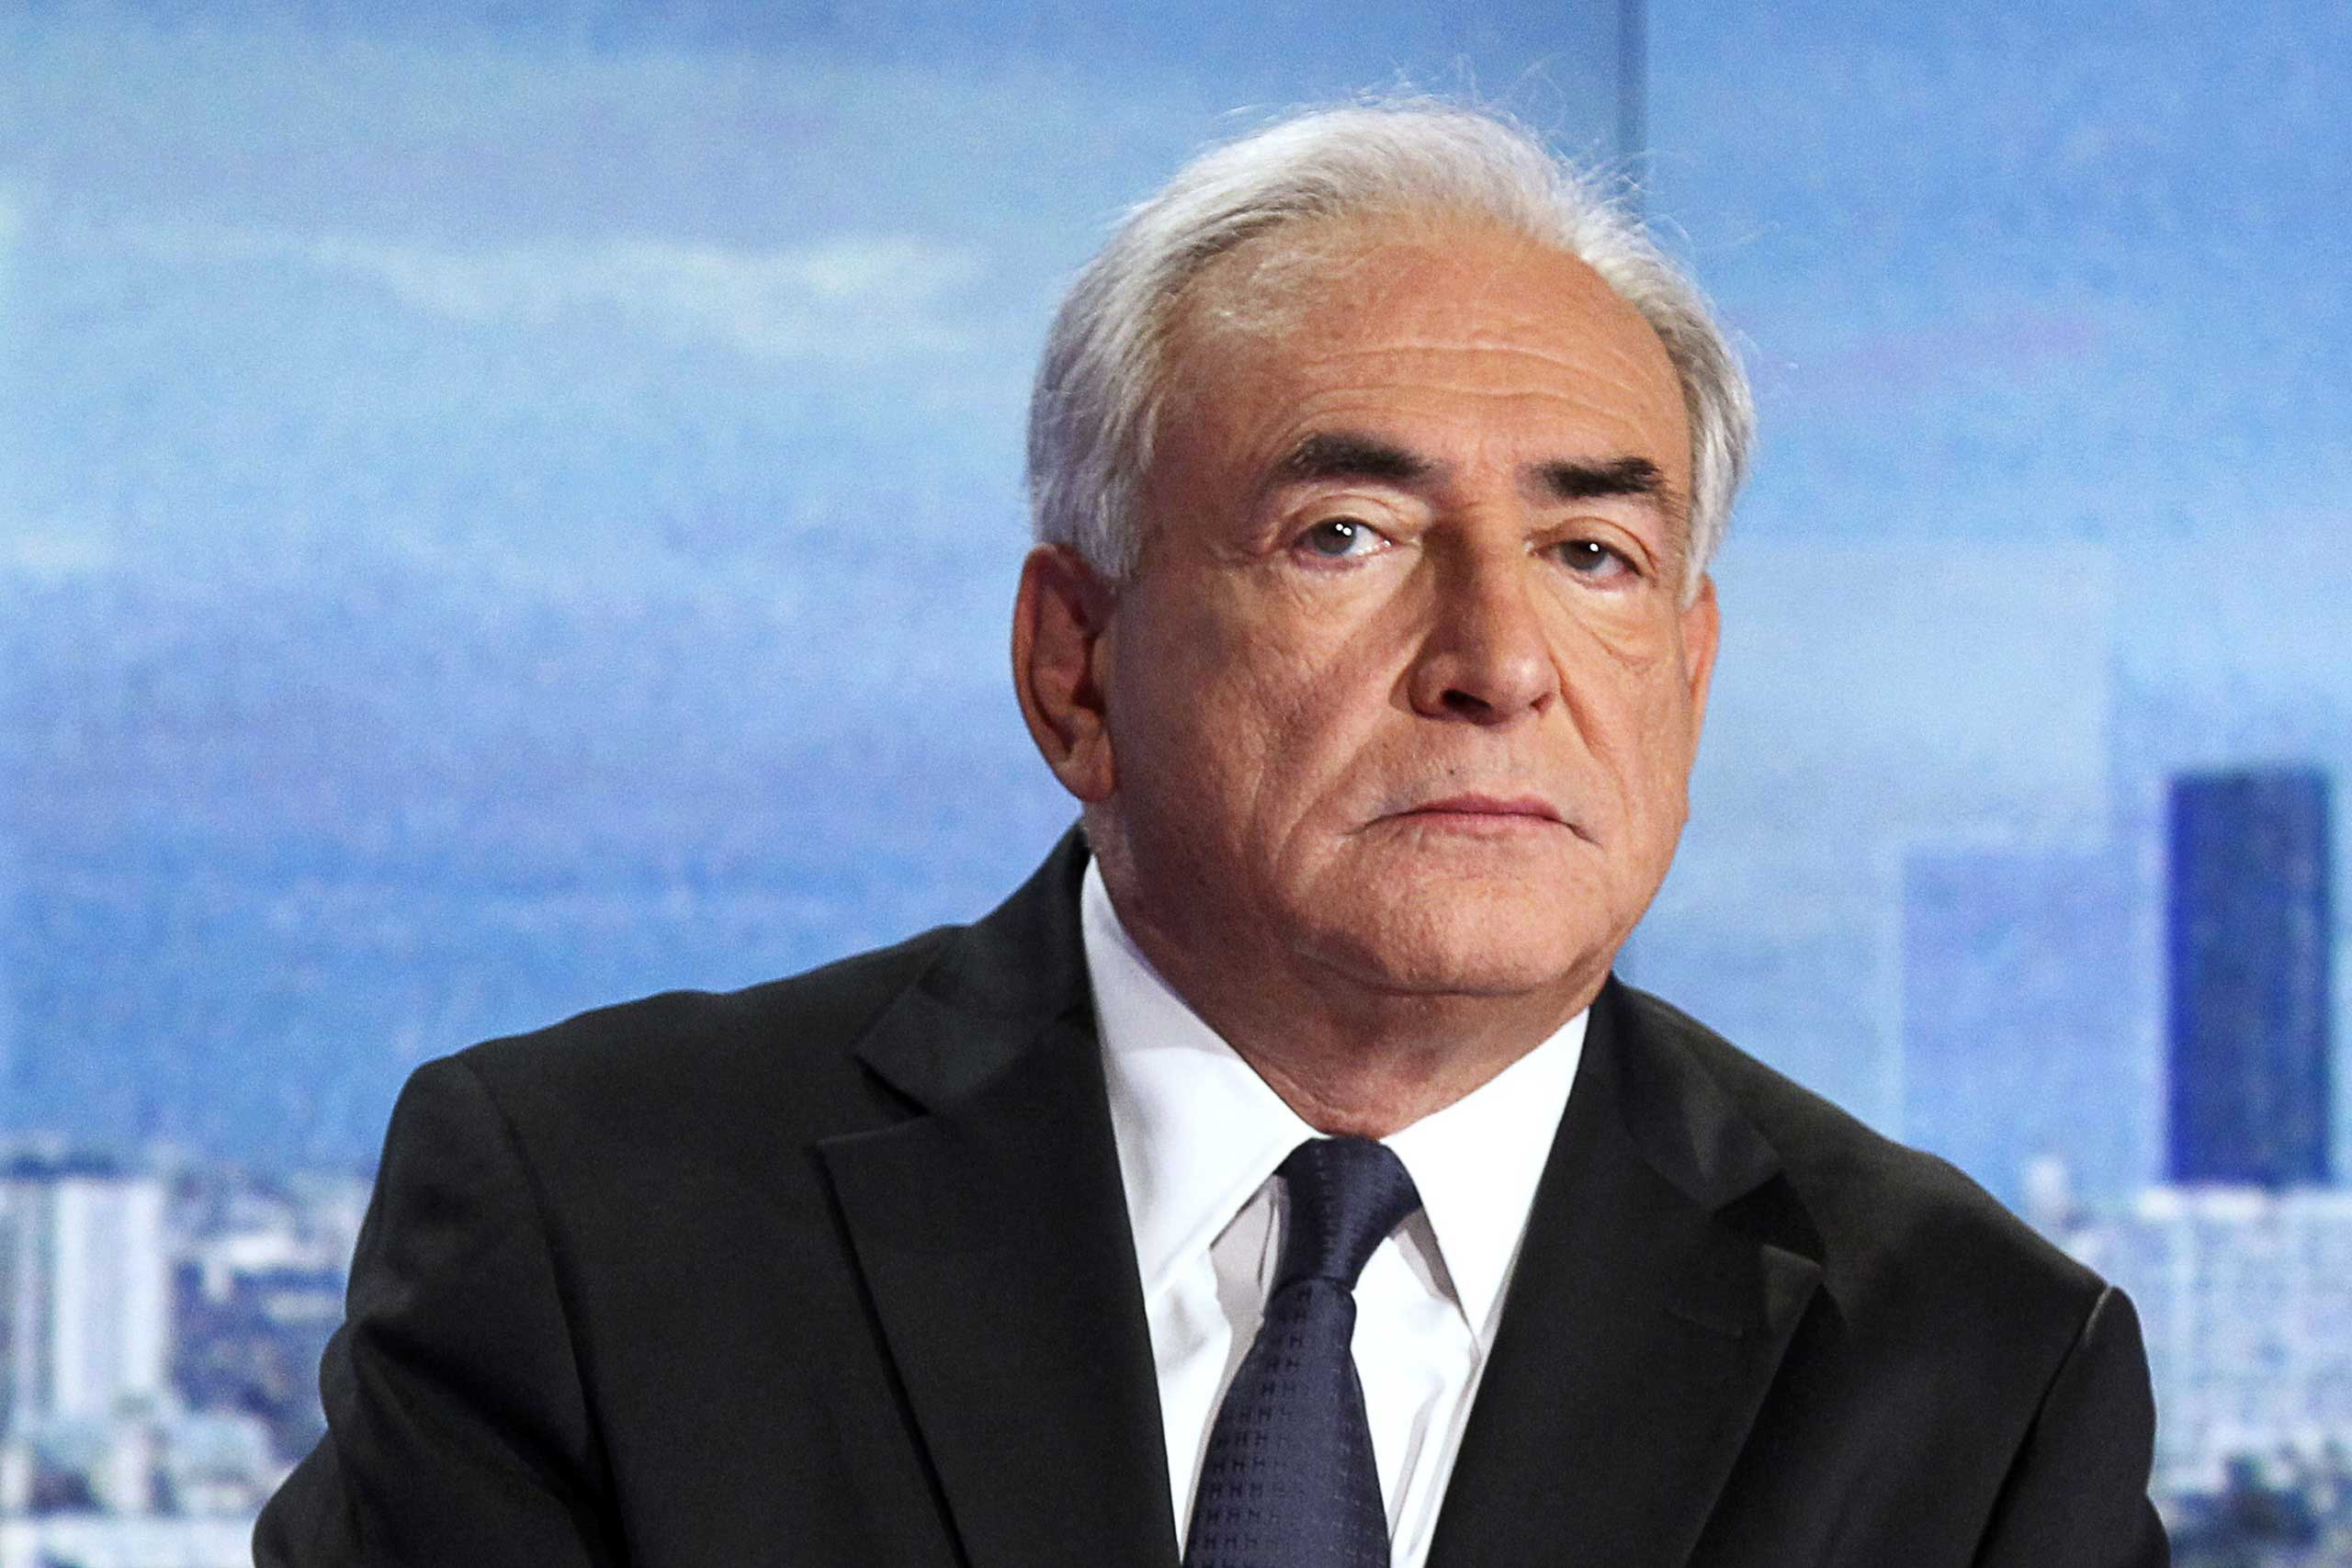 Former International Monetary Fund chief Dominique Strauss-Kahn takes part in the news broadcast of French TV station TF1, in Boulogne-Billancourt, France on Sept. 18, 2011.